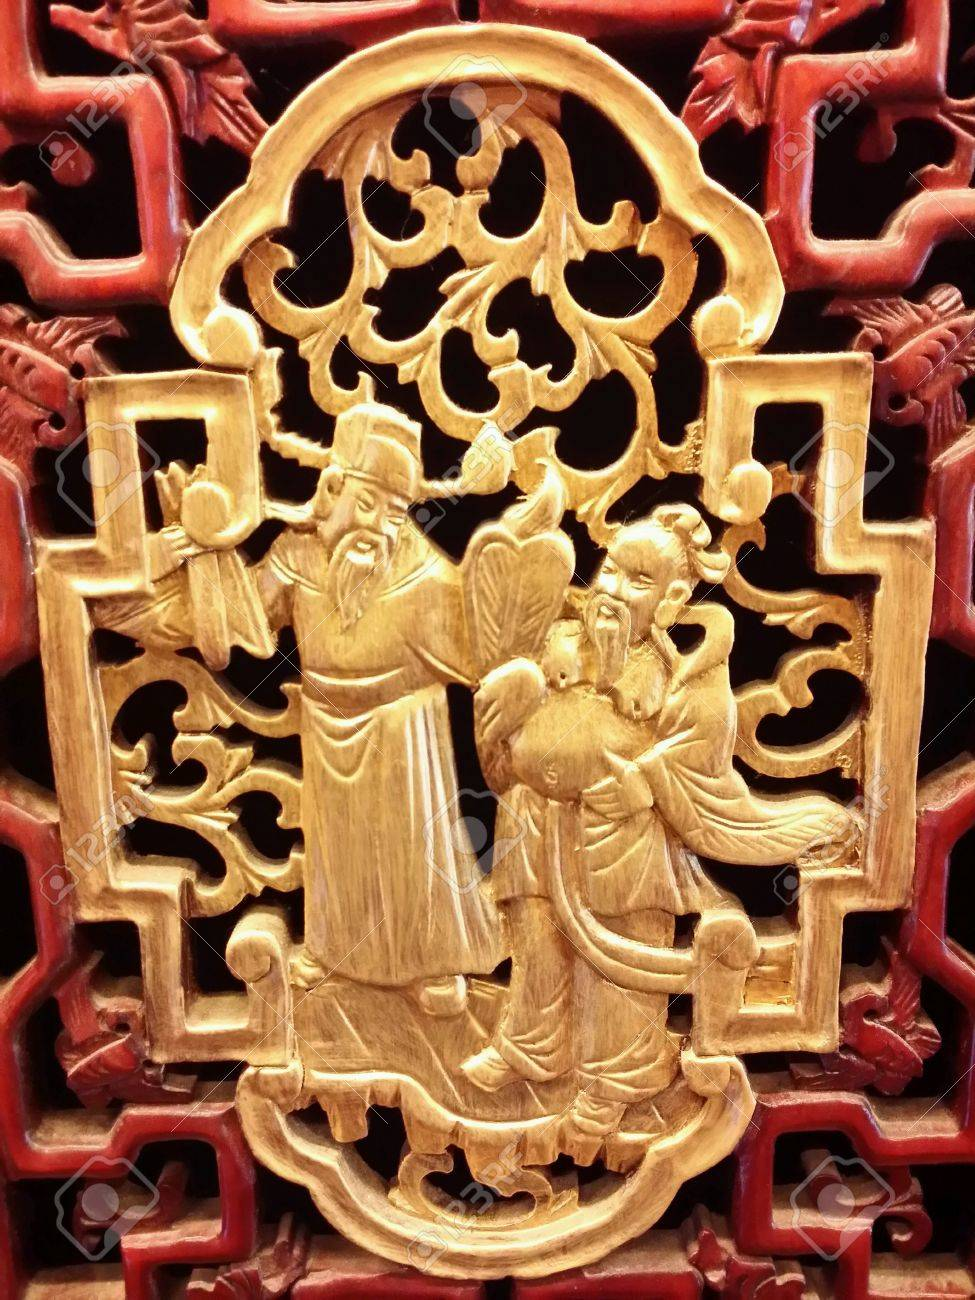 Wood Carving Ancient Asian Motif Stock Photo, Picture And Royalty ...